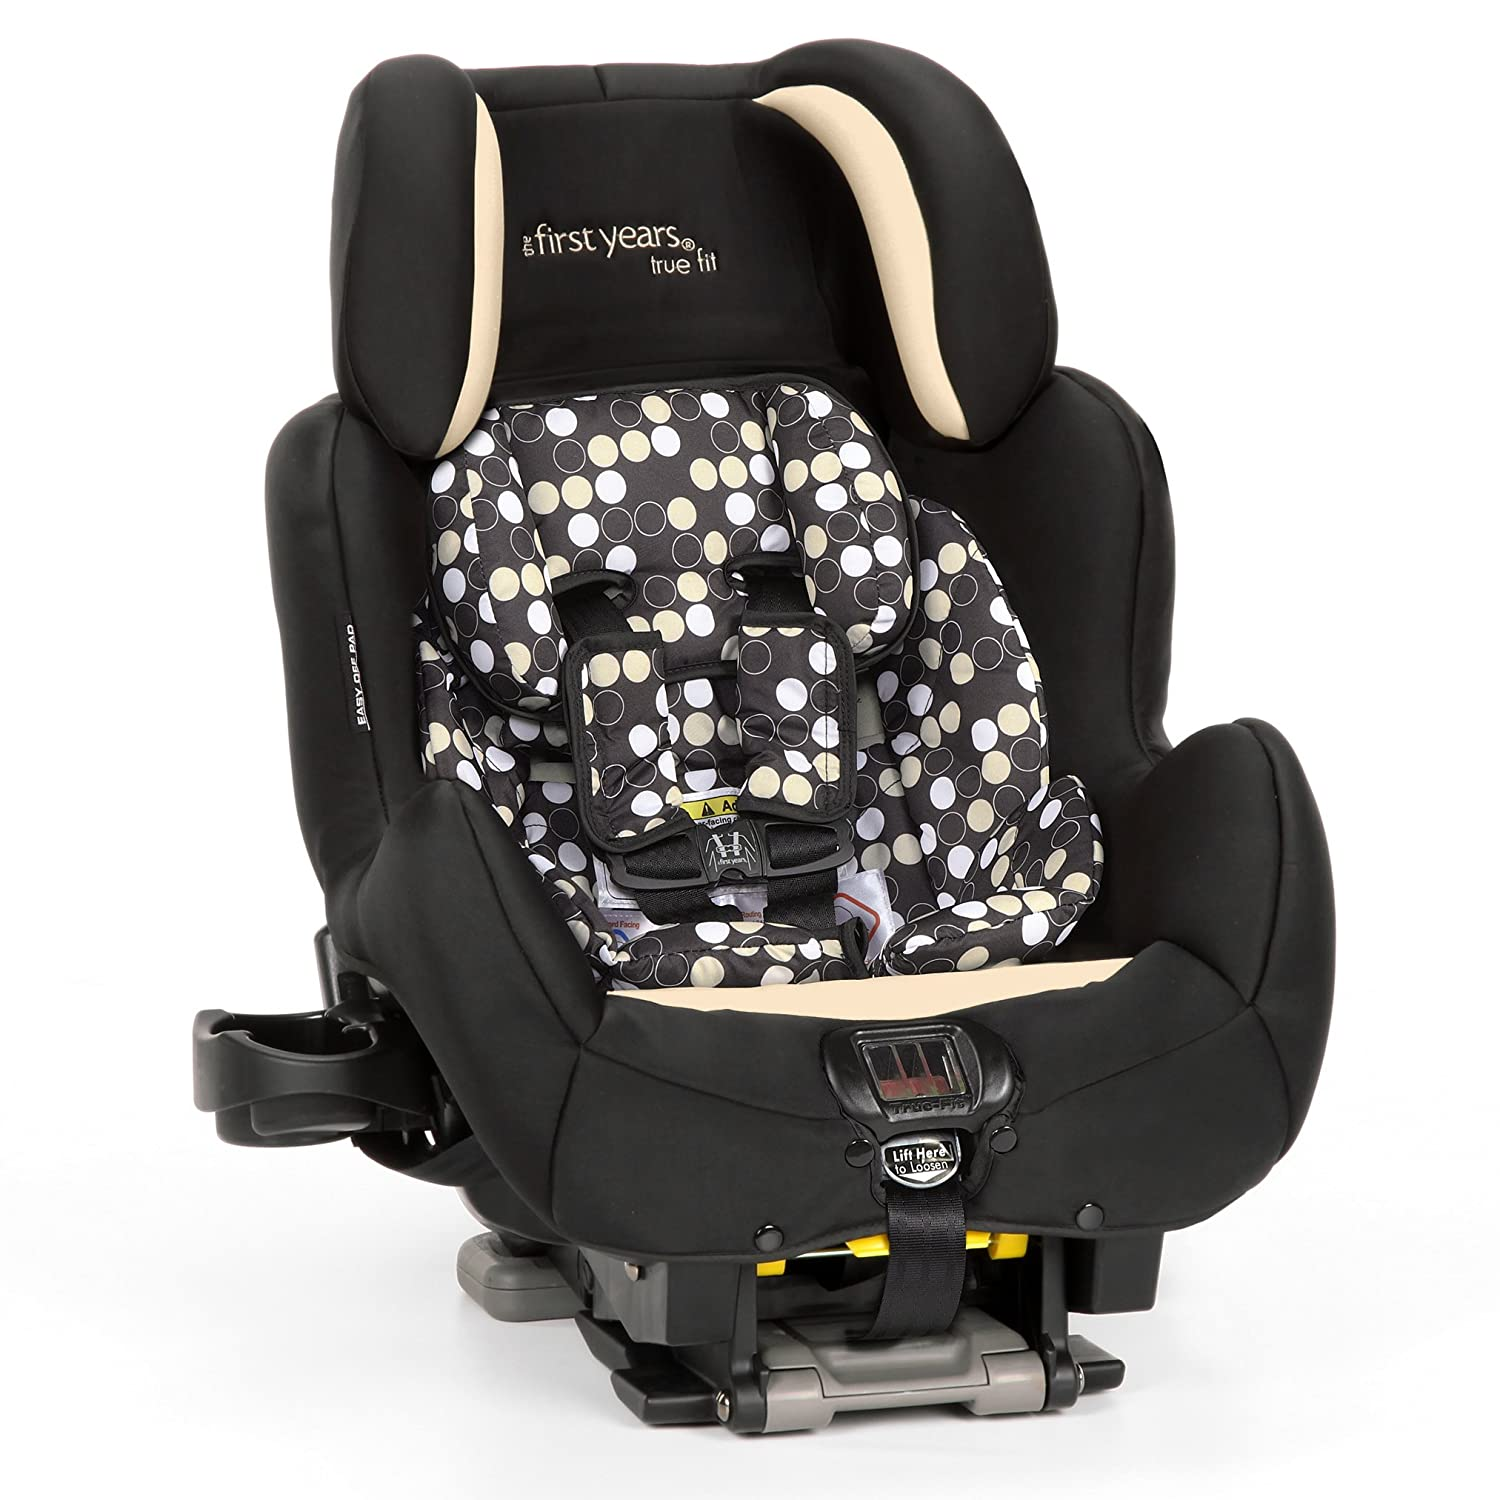 The First Years True Fit SI C680 Car Seat, Naturalization